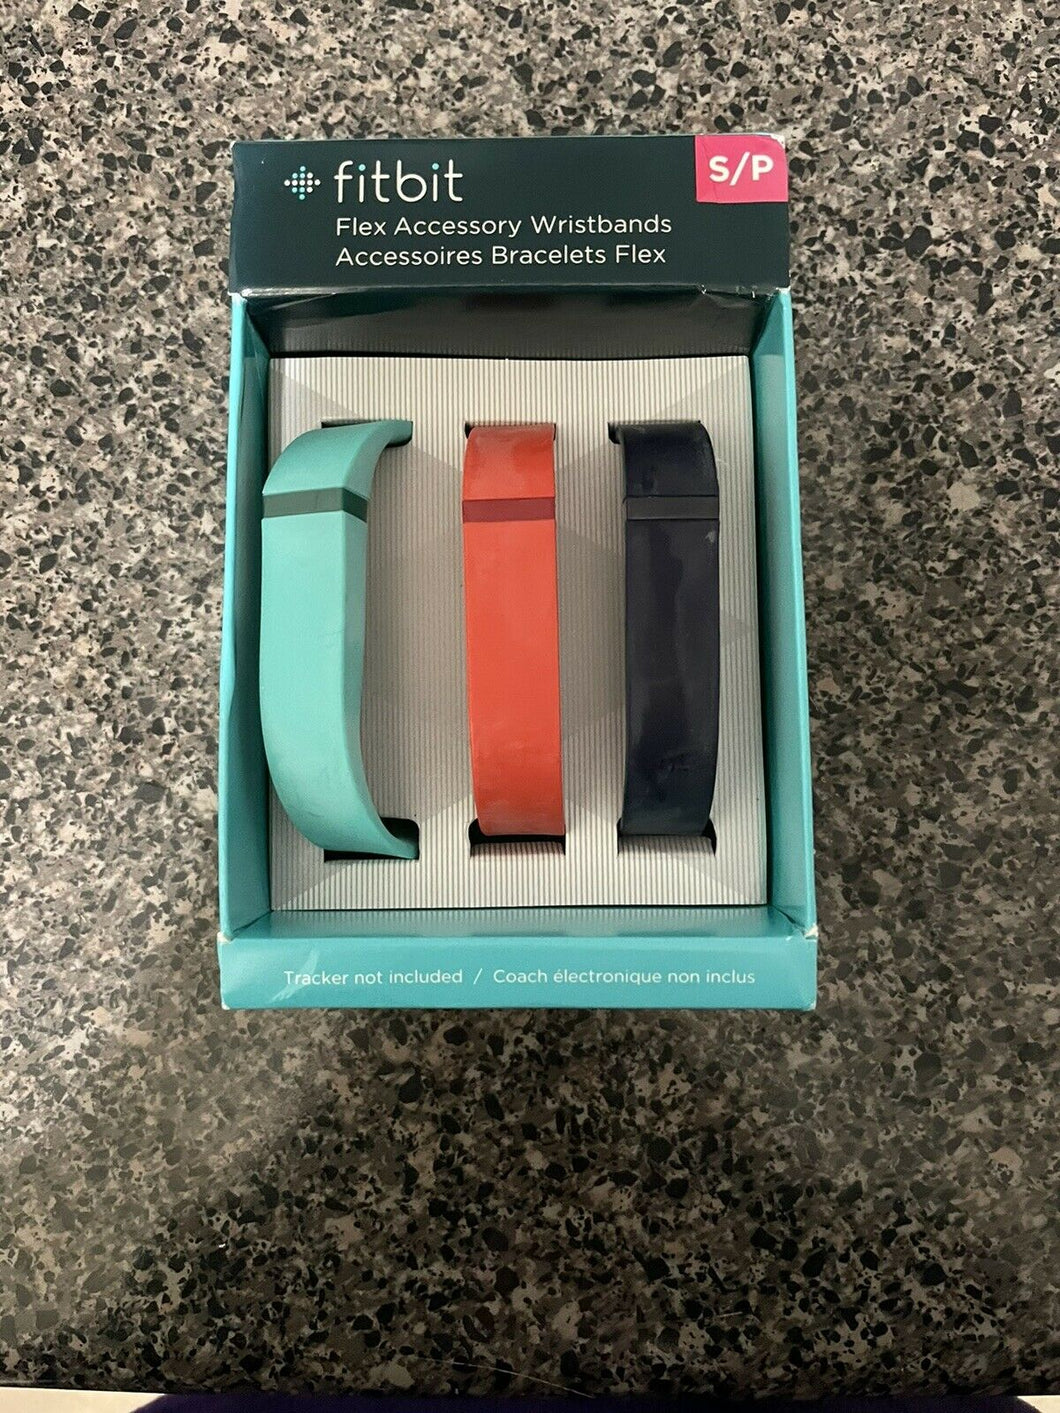 Fitbit Flex Small Wristbands Accessory Bands, Black / Red /Blue, NEW, Open Box - Pale Ale Boutique